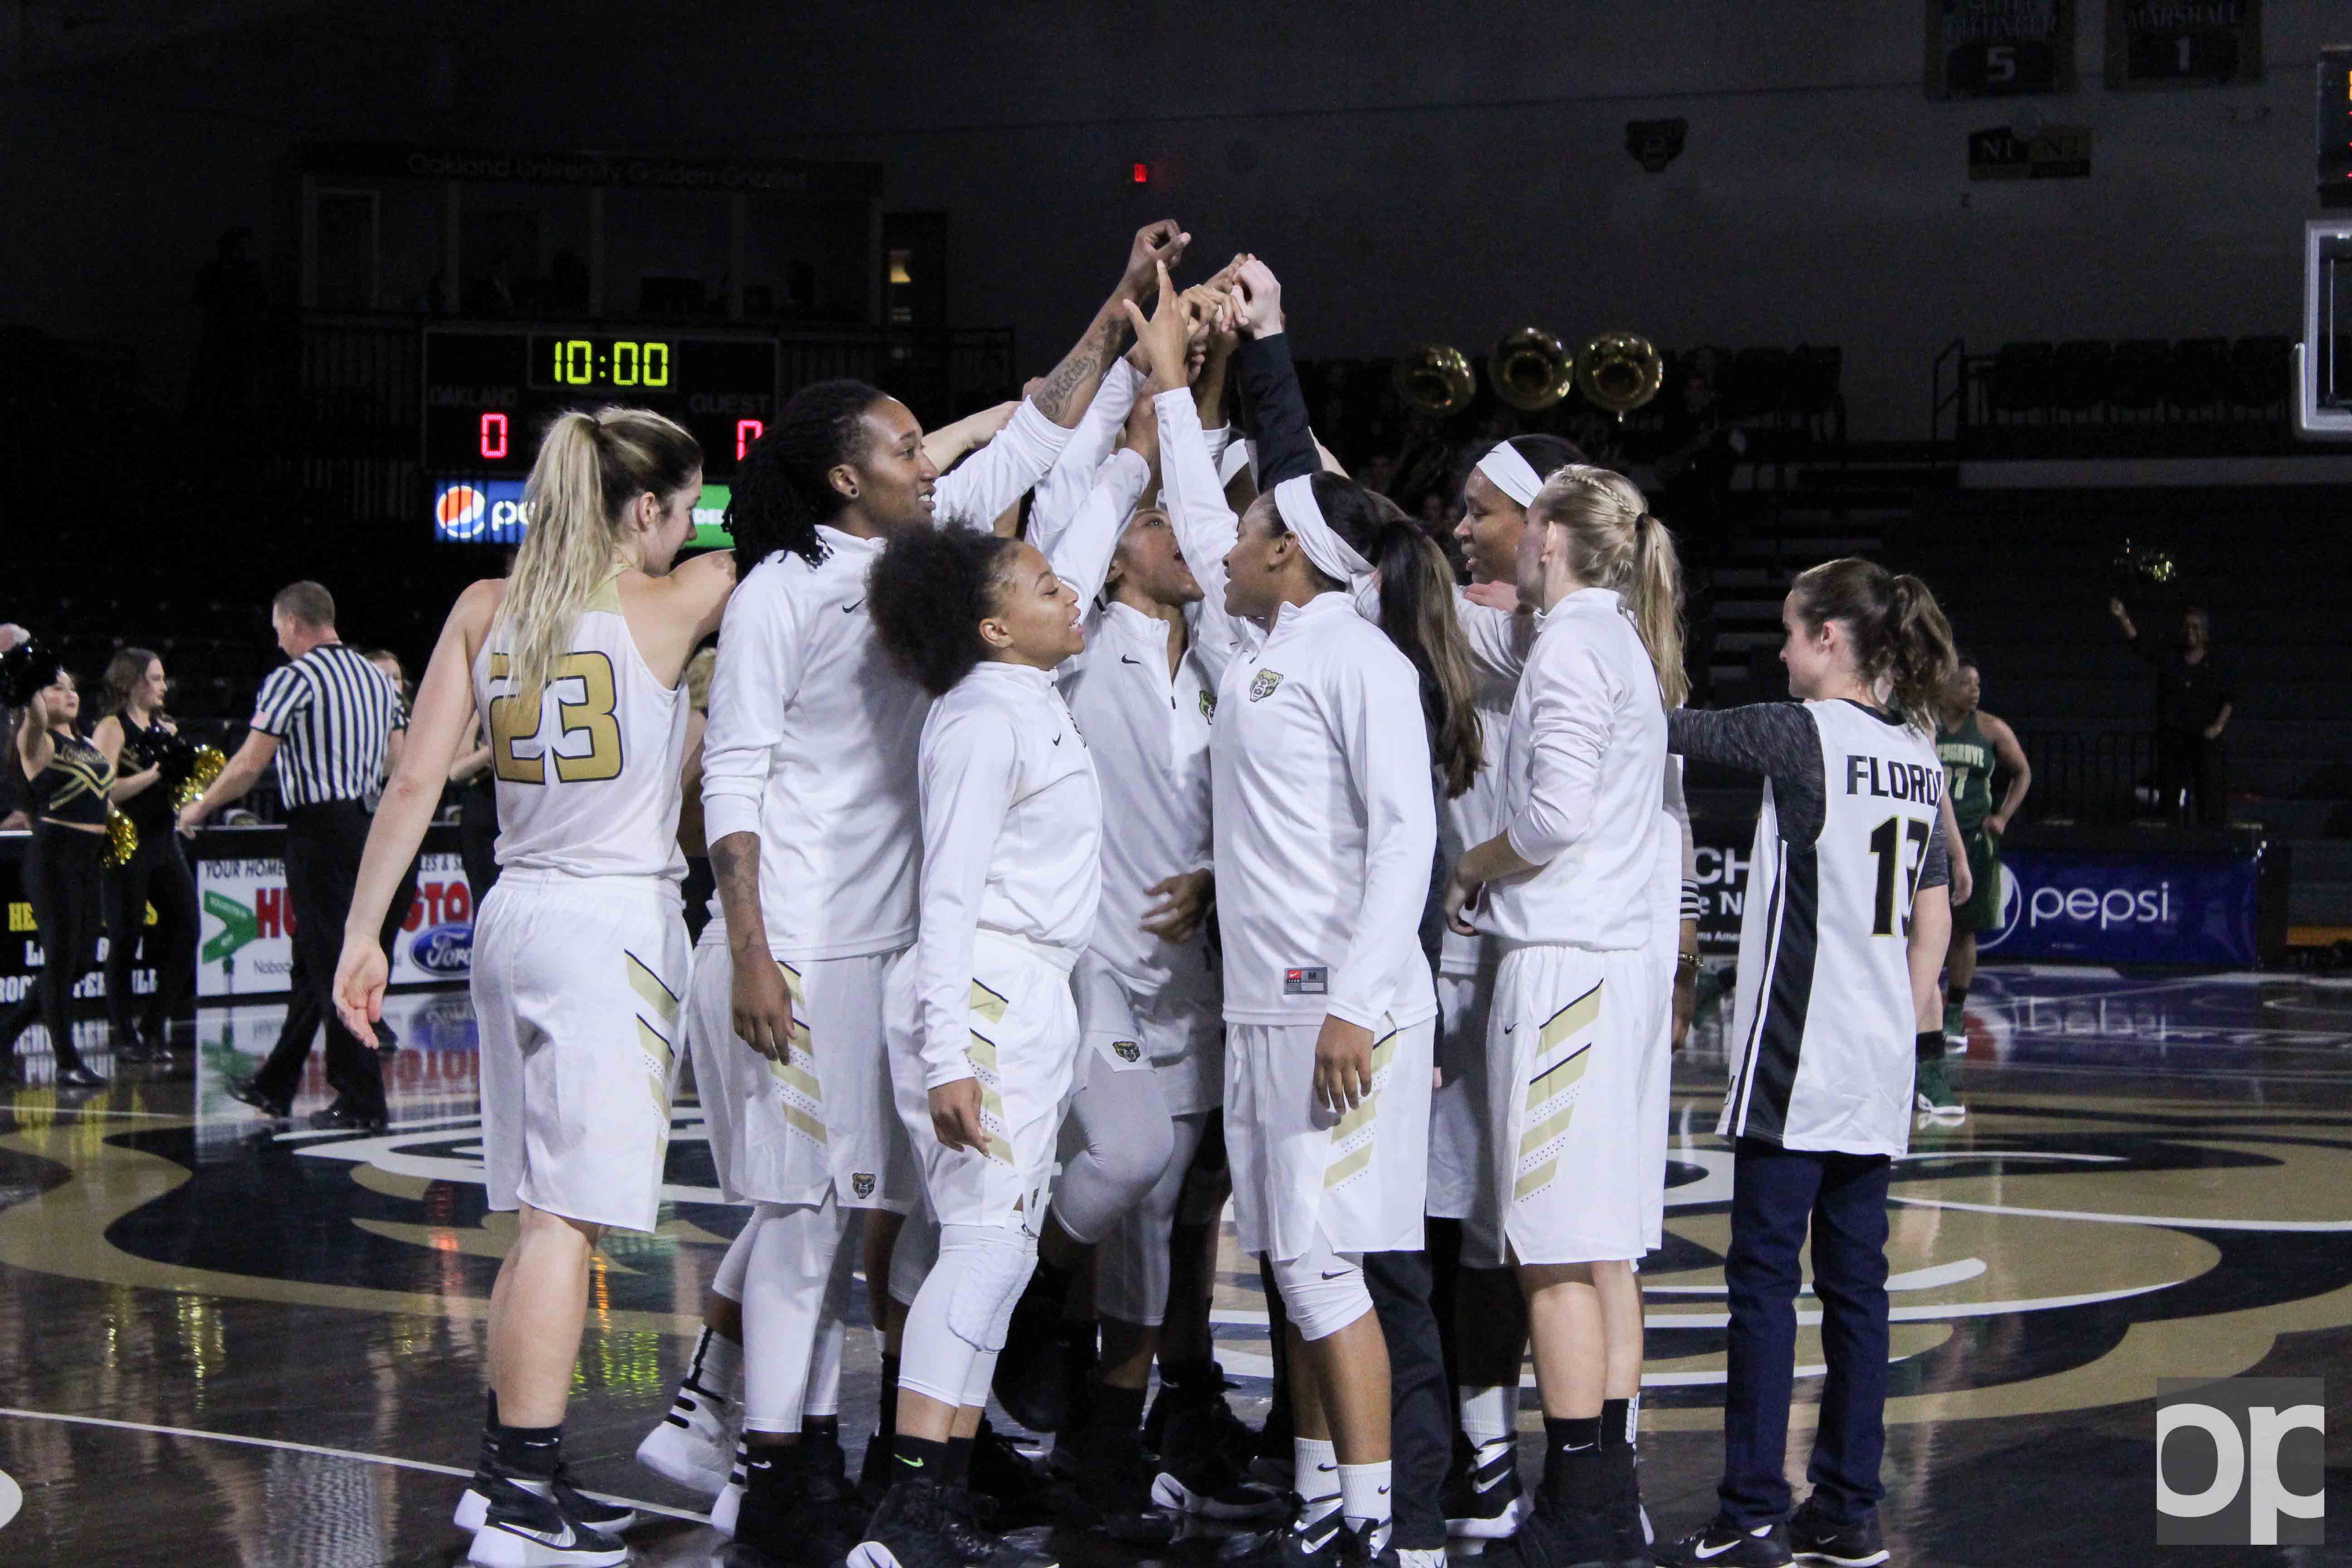 The Golden Grizzlies were back on the Blacktop Monday evening where they celebrated a win over Marygrove. The home opener final score was 126-31.